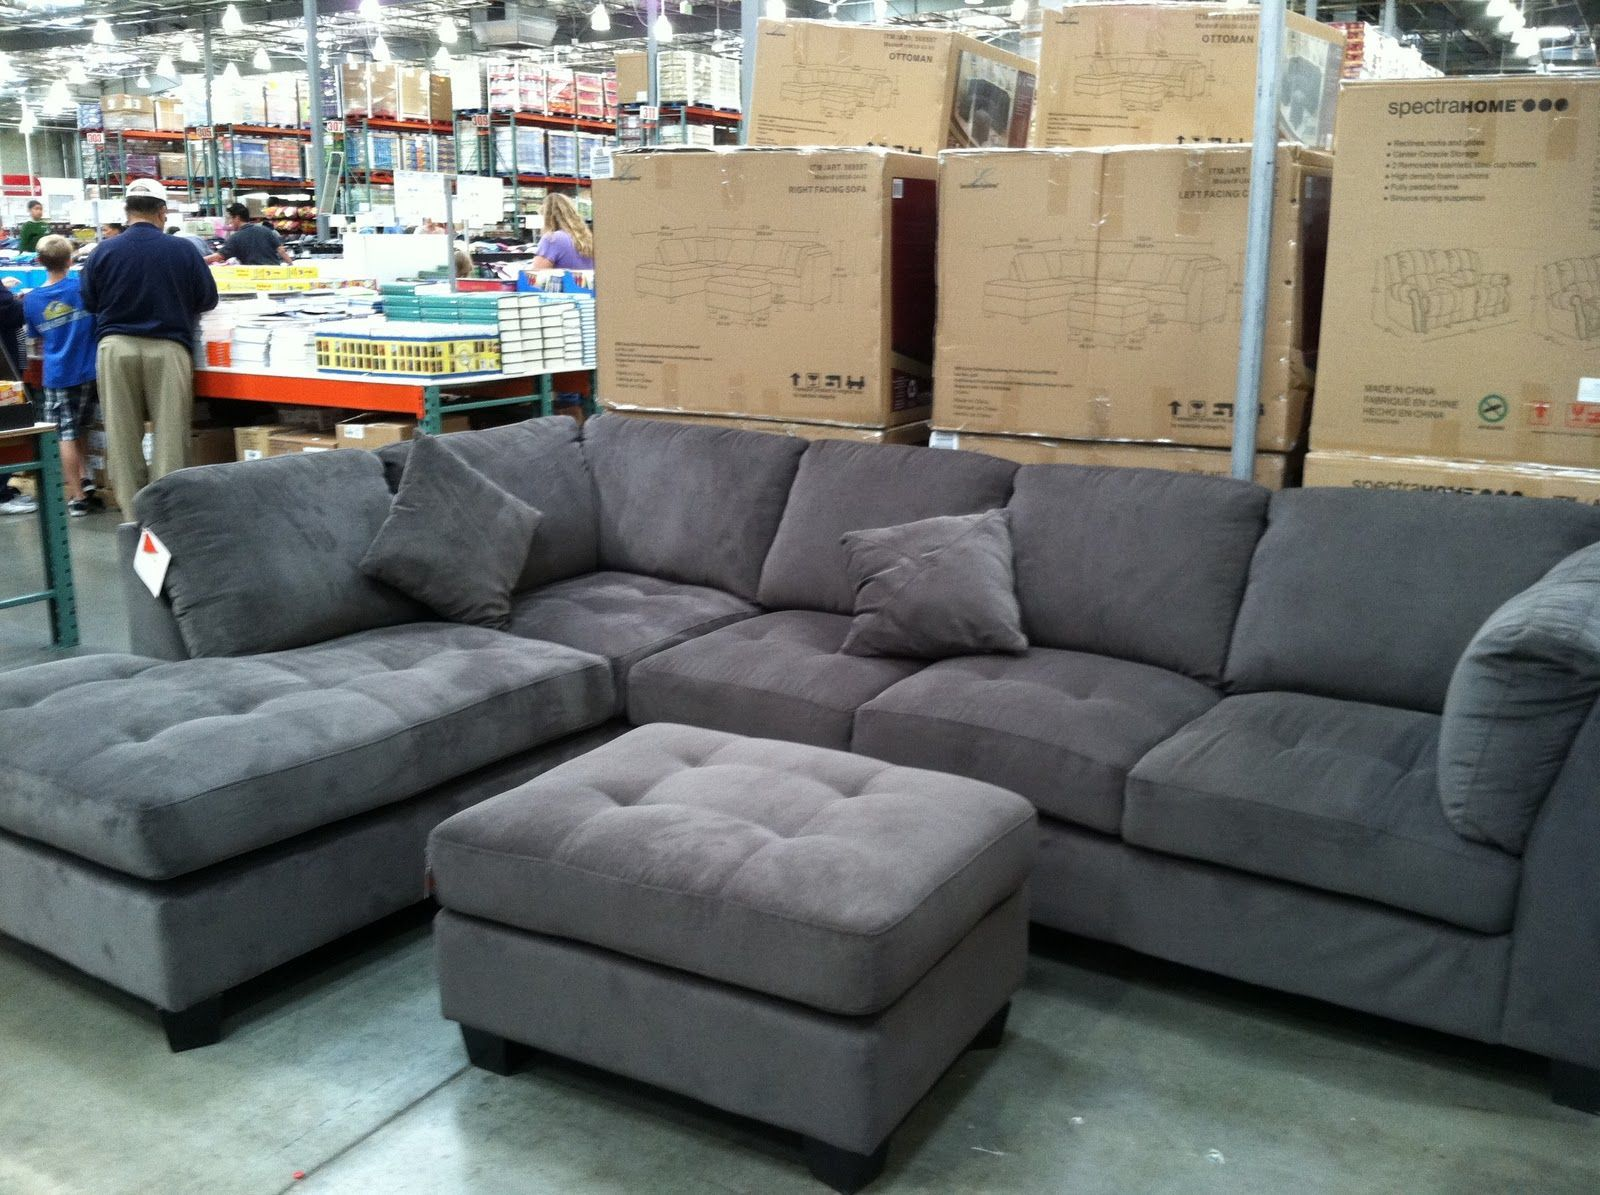 Modular Sectional Sleeper Sofa | Sectional sleeper sofa ...